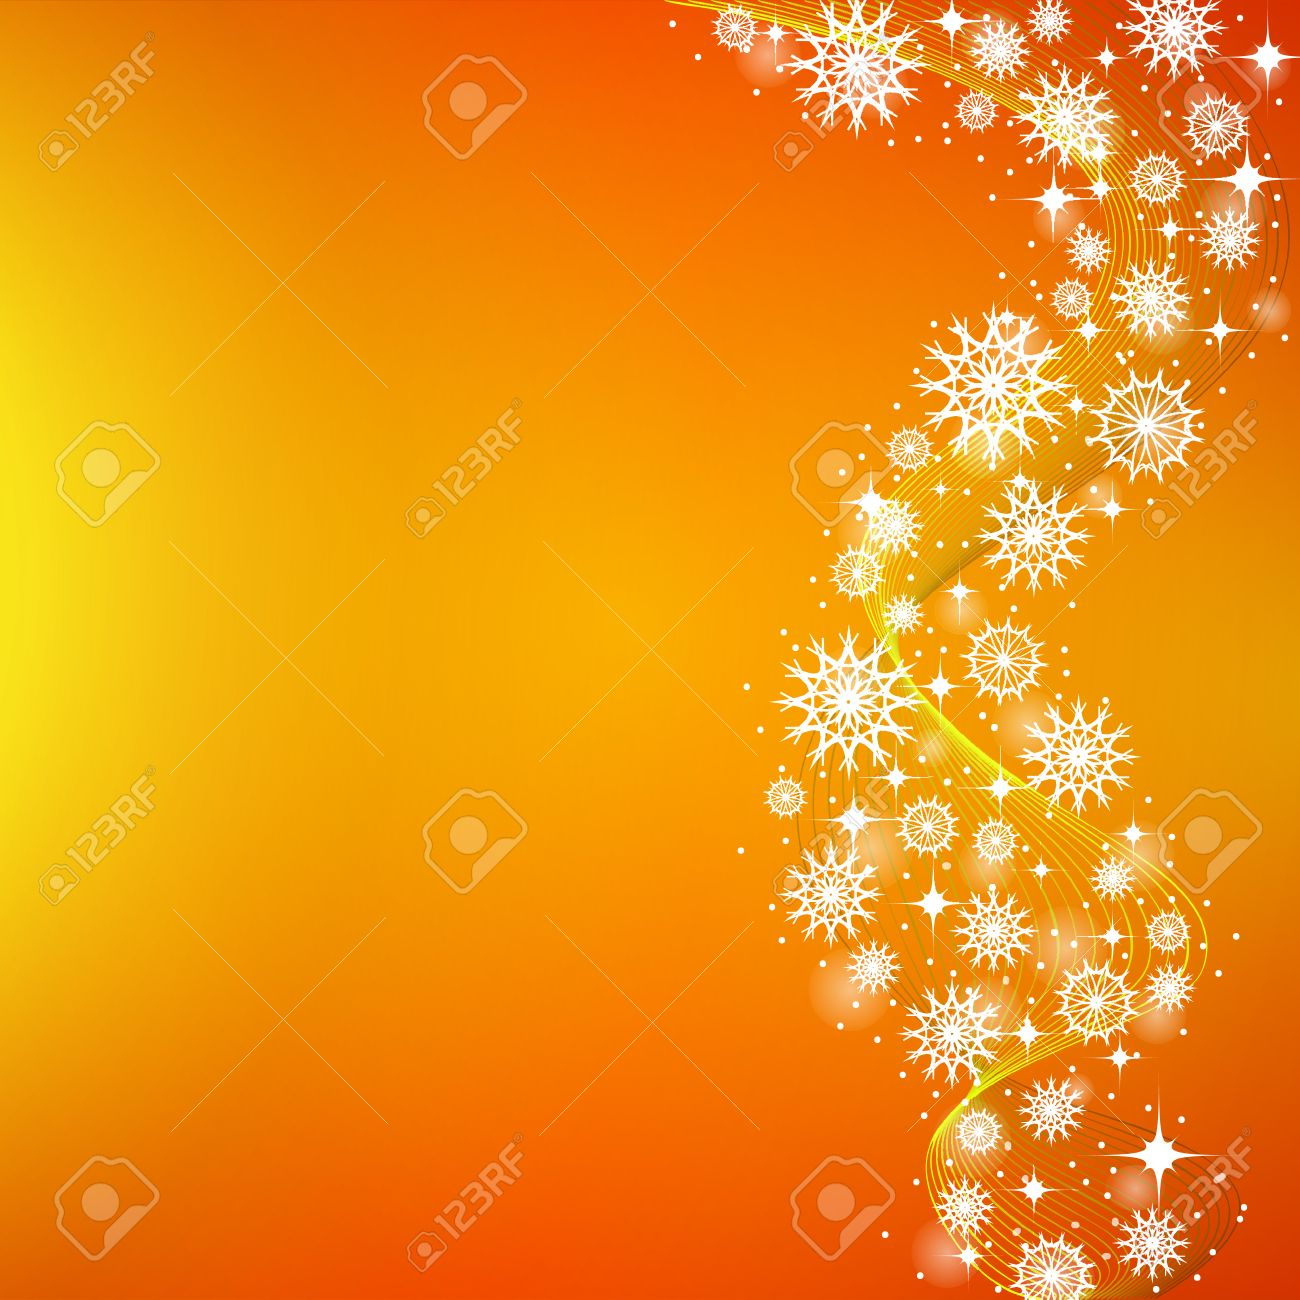 The Orange Yellow Background Of Falling Snowflakes And Stars Royalty